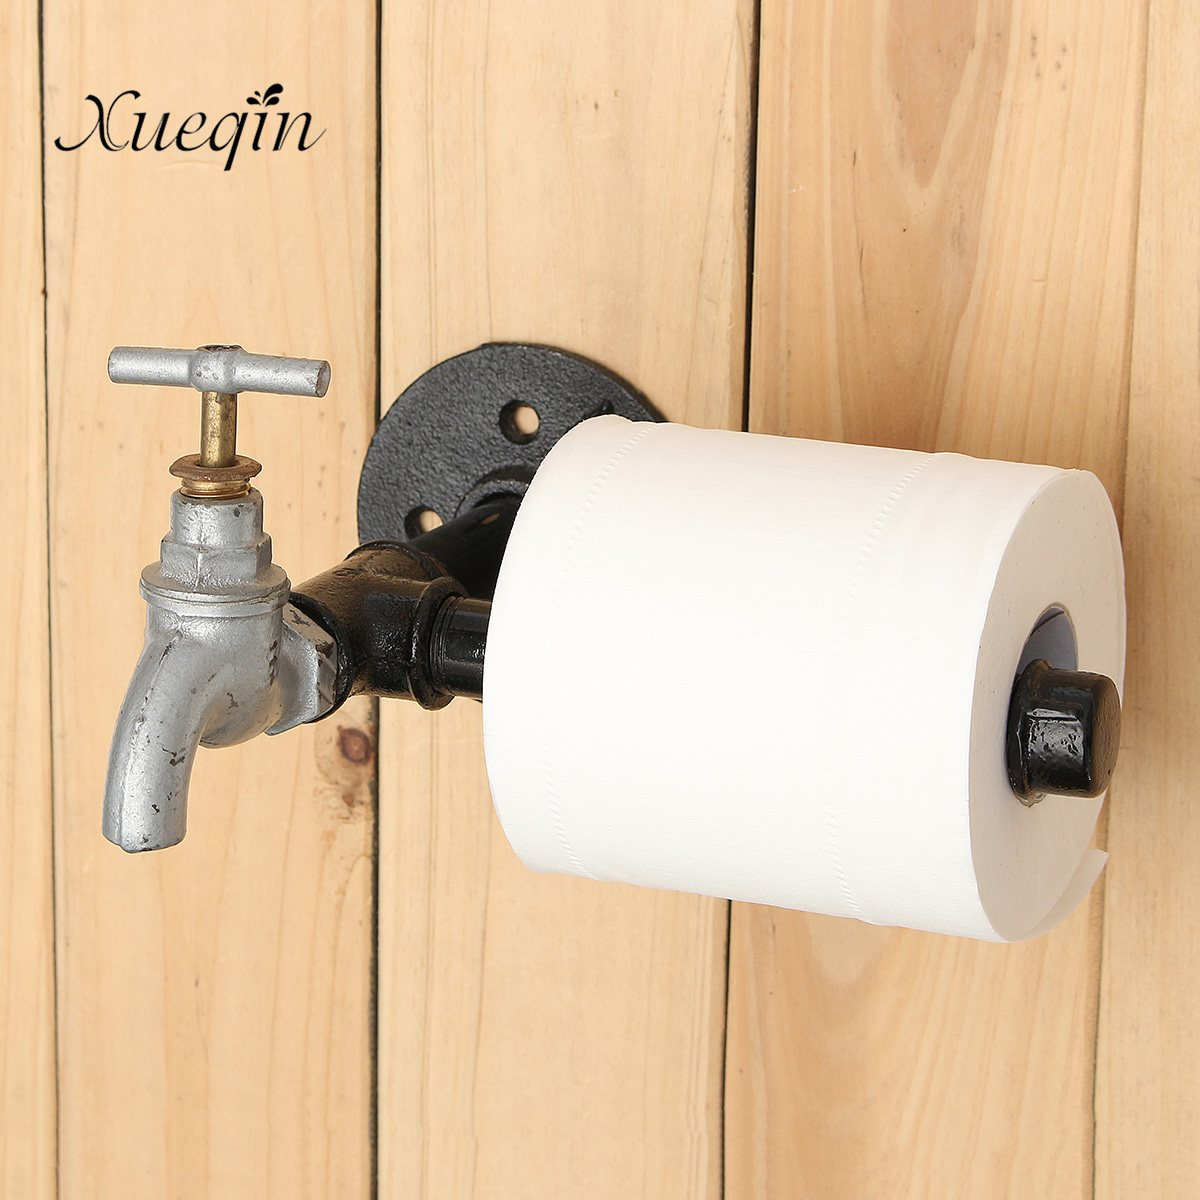 Bathroom Hardware Trustful Xueqin New Industrial Rustic Style Black Iron Pipe Metal Toilet Paper Roll Holder Wall Mounted Home Bathroom Hardware Supplies